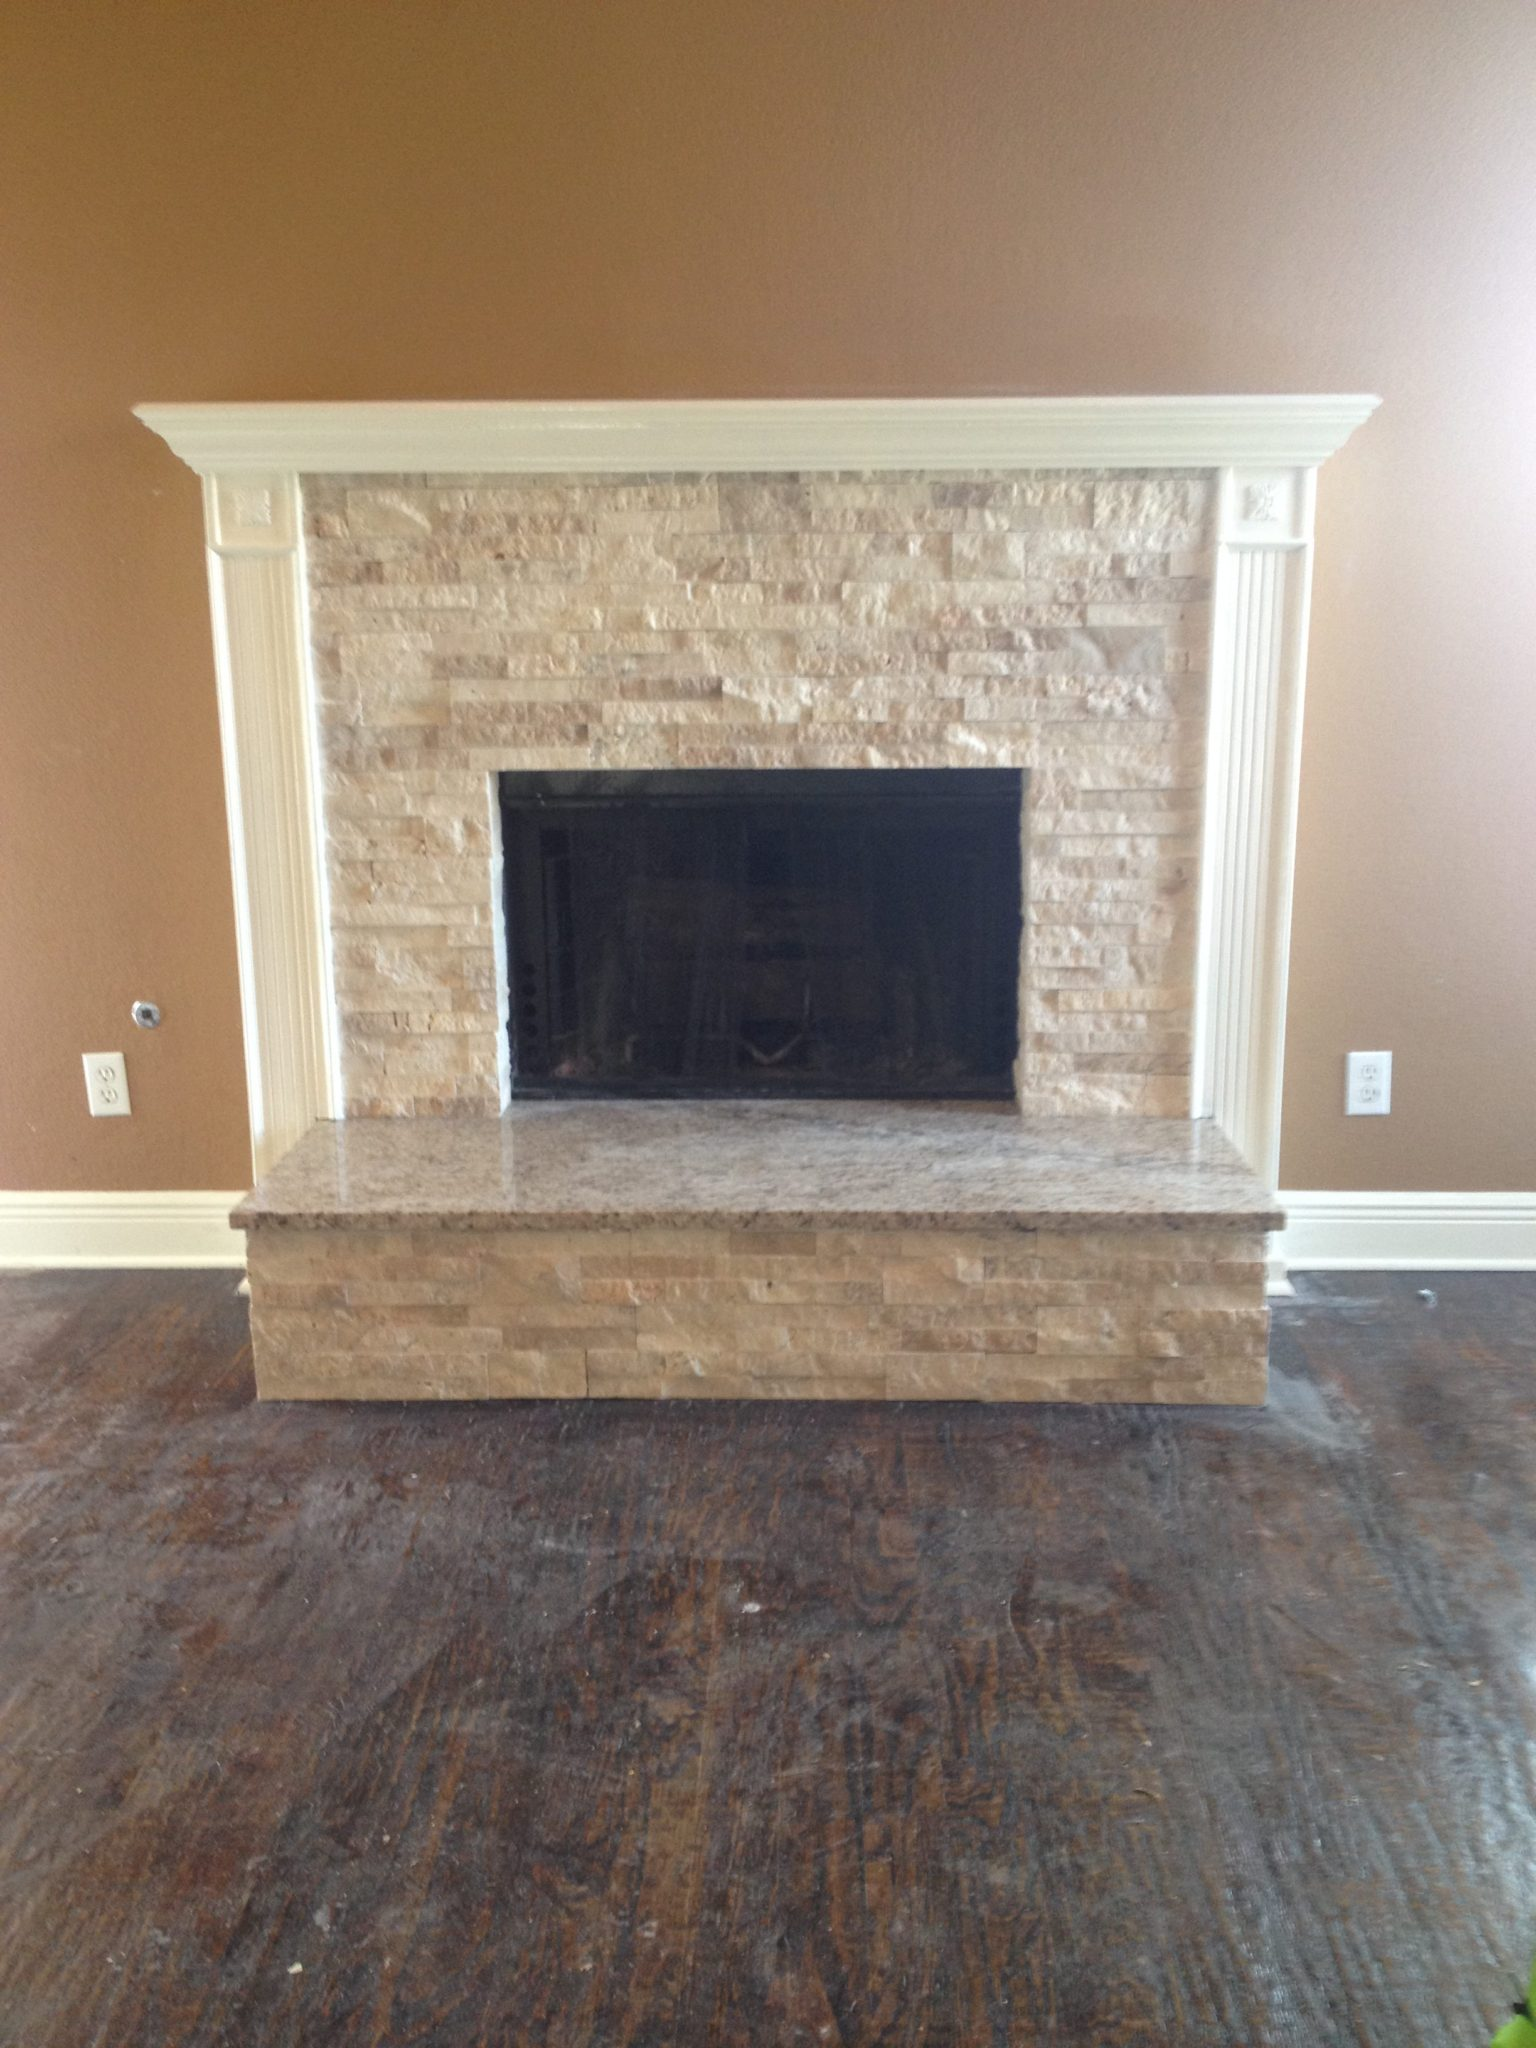 Fireplace Remodel Increase Home Value For A Small Investment